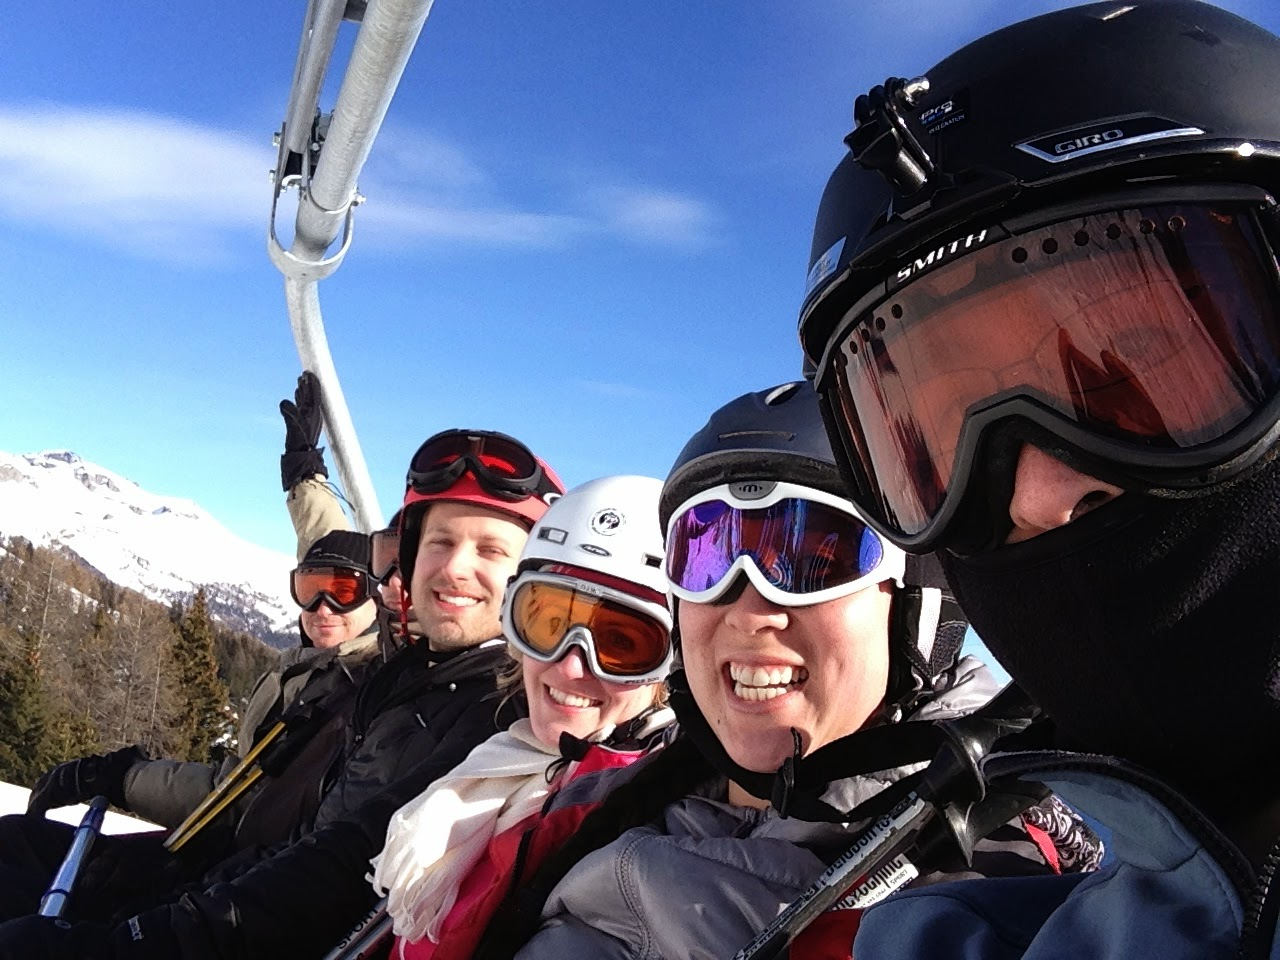 Riding up to the top of the slopes.